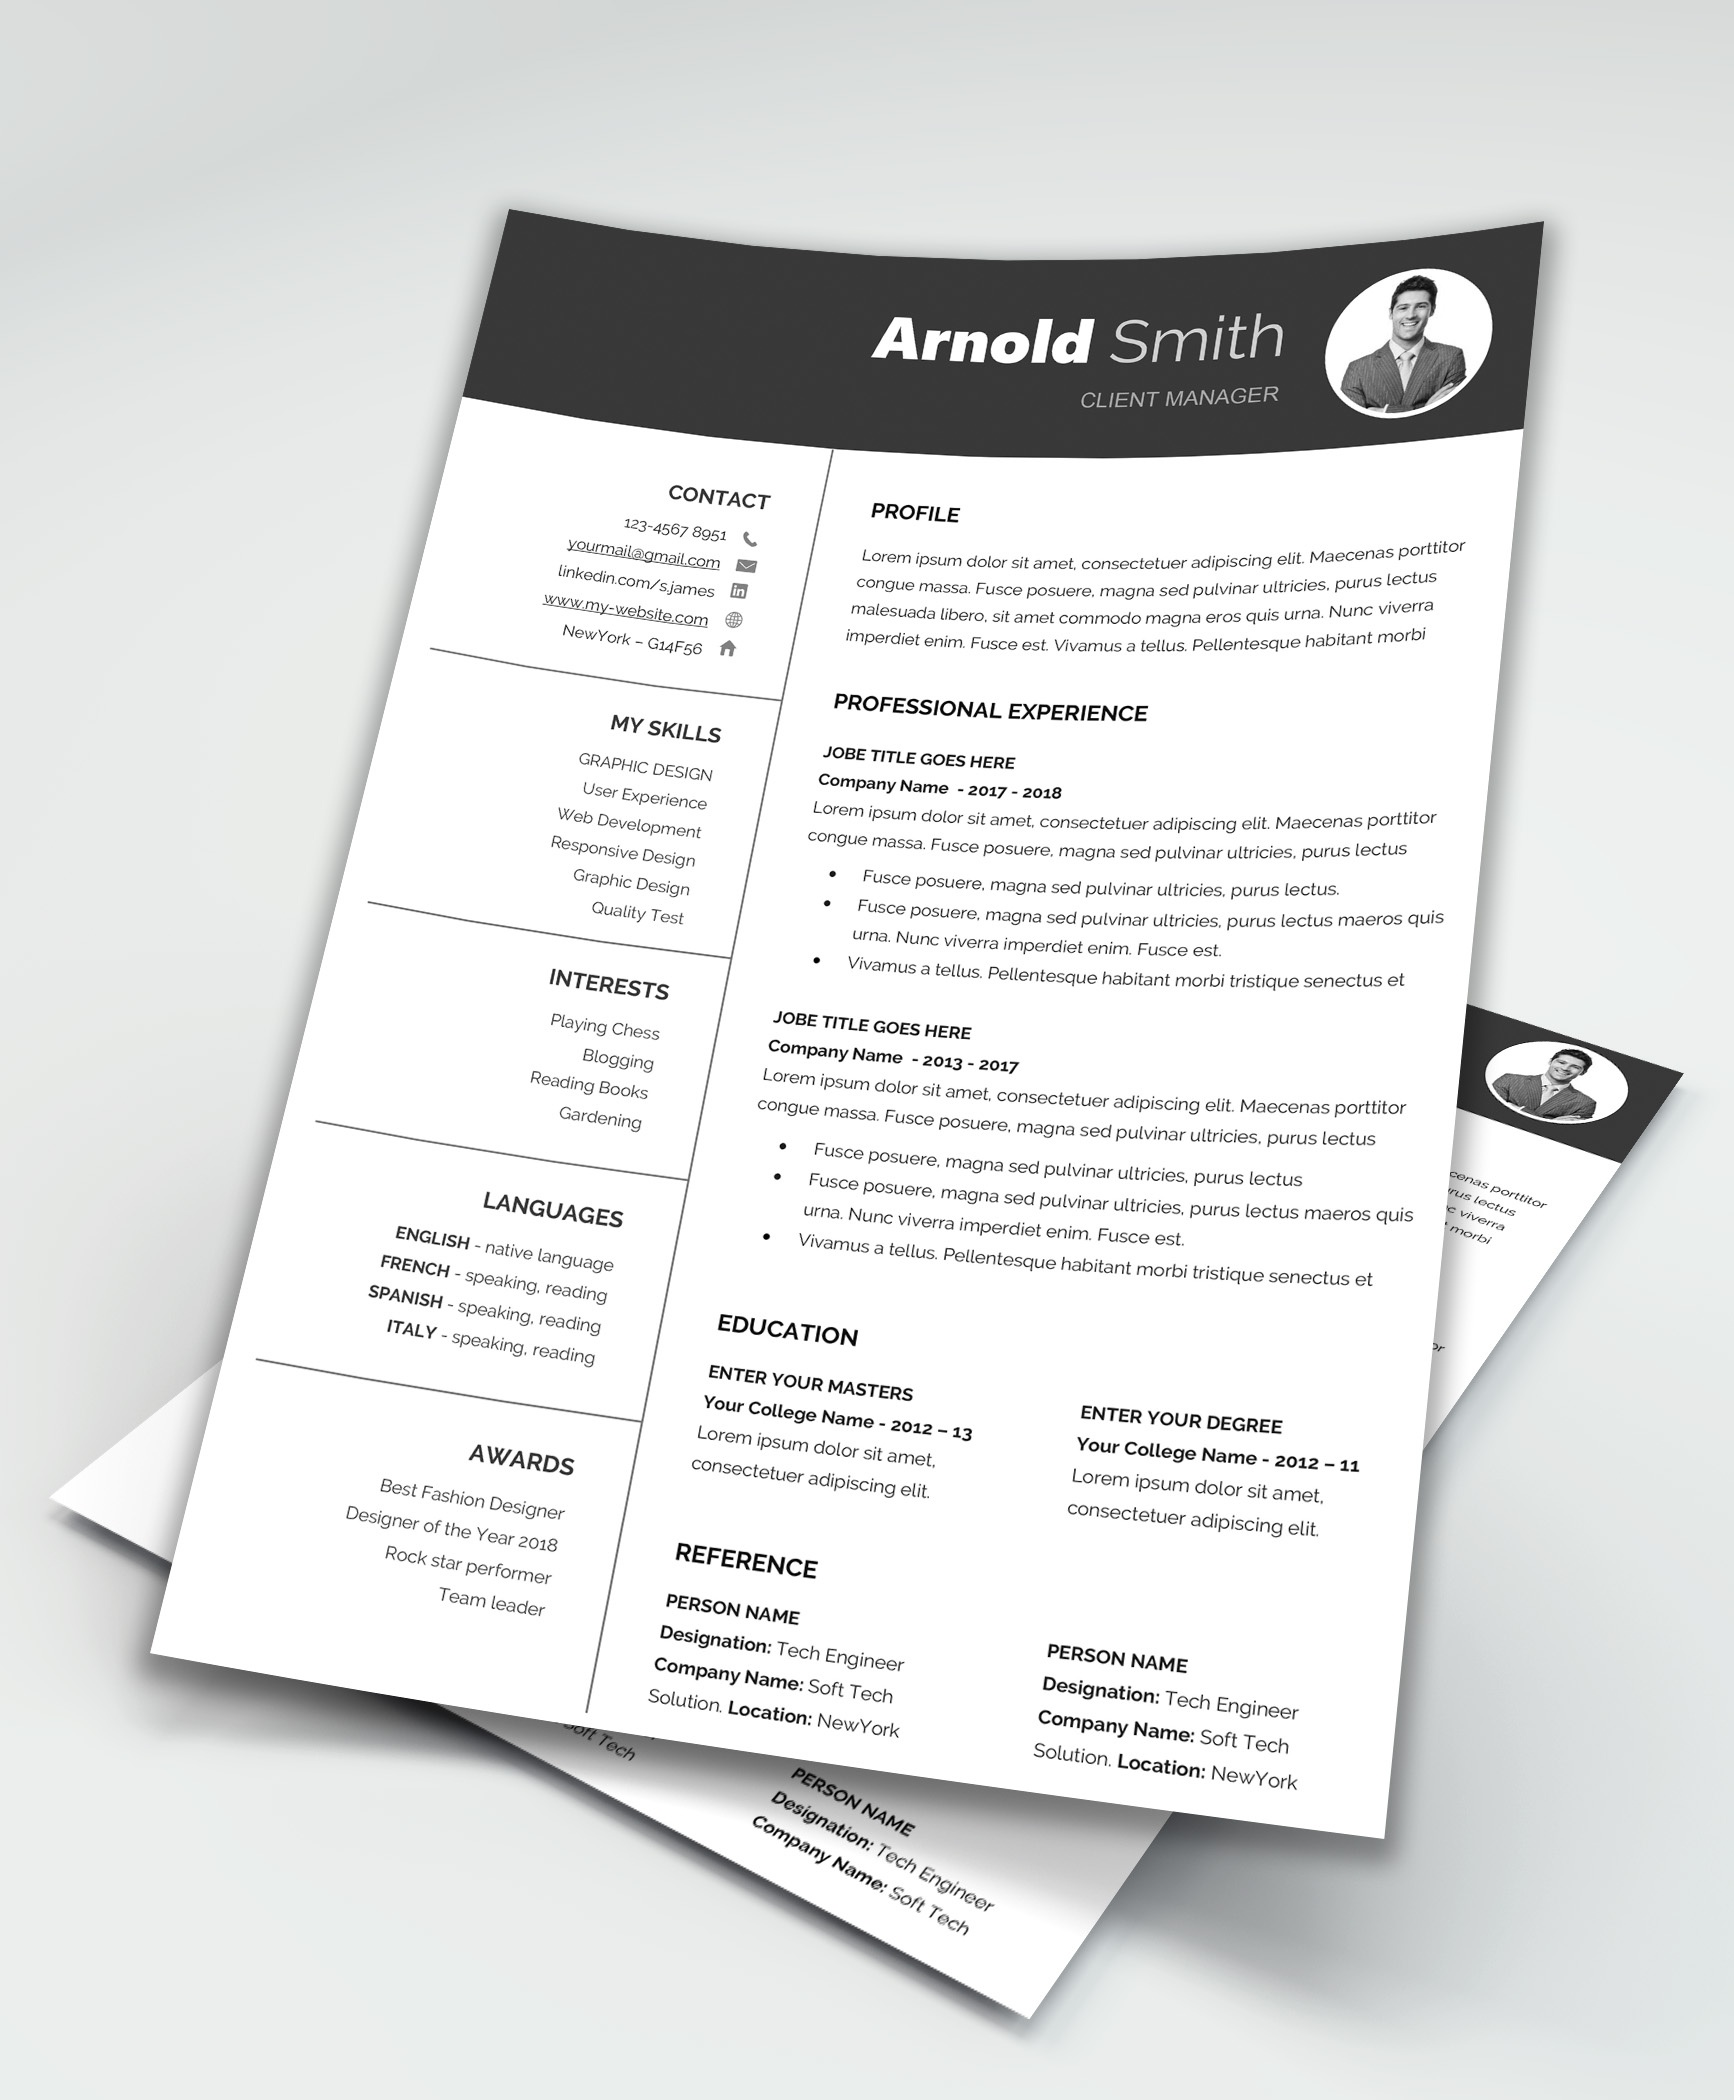 Free Resume Word Template Do You Know Any Professional Sophisticated Resume Templates For